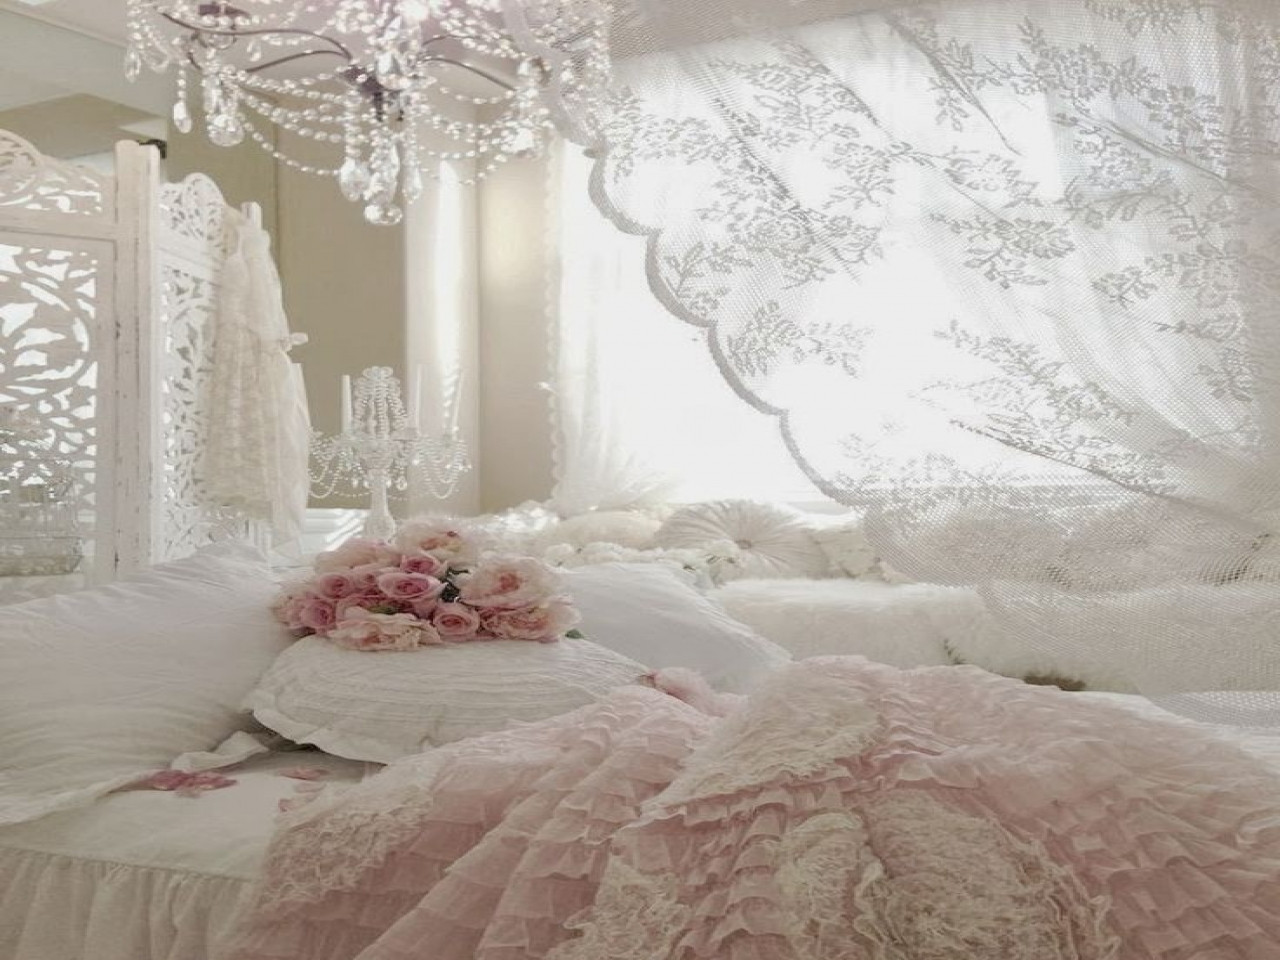 Best ideas about Pinterest Shabby Chic . Save or Pin Romantic rustic bedroom ideas shabby chic bedroom design Now.